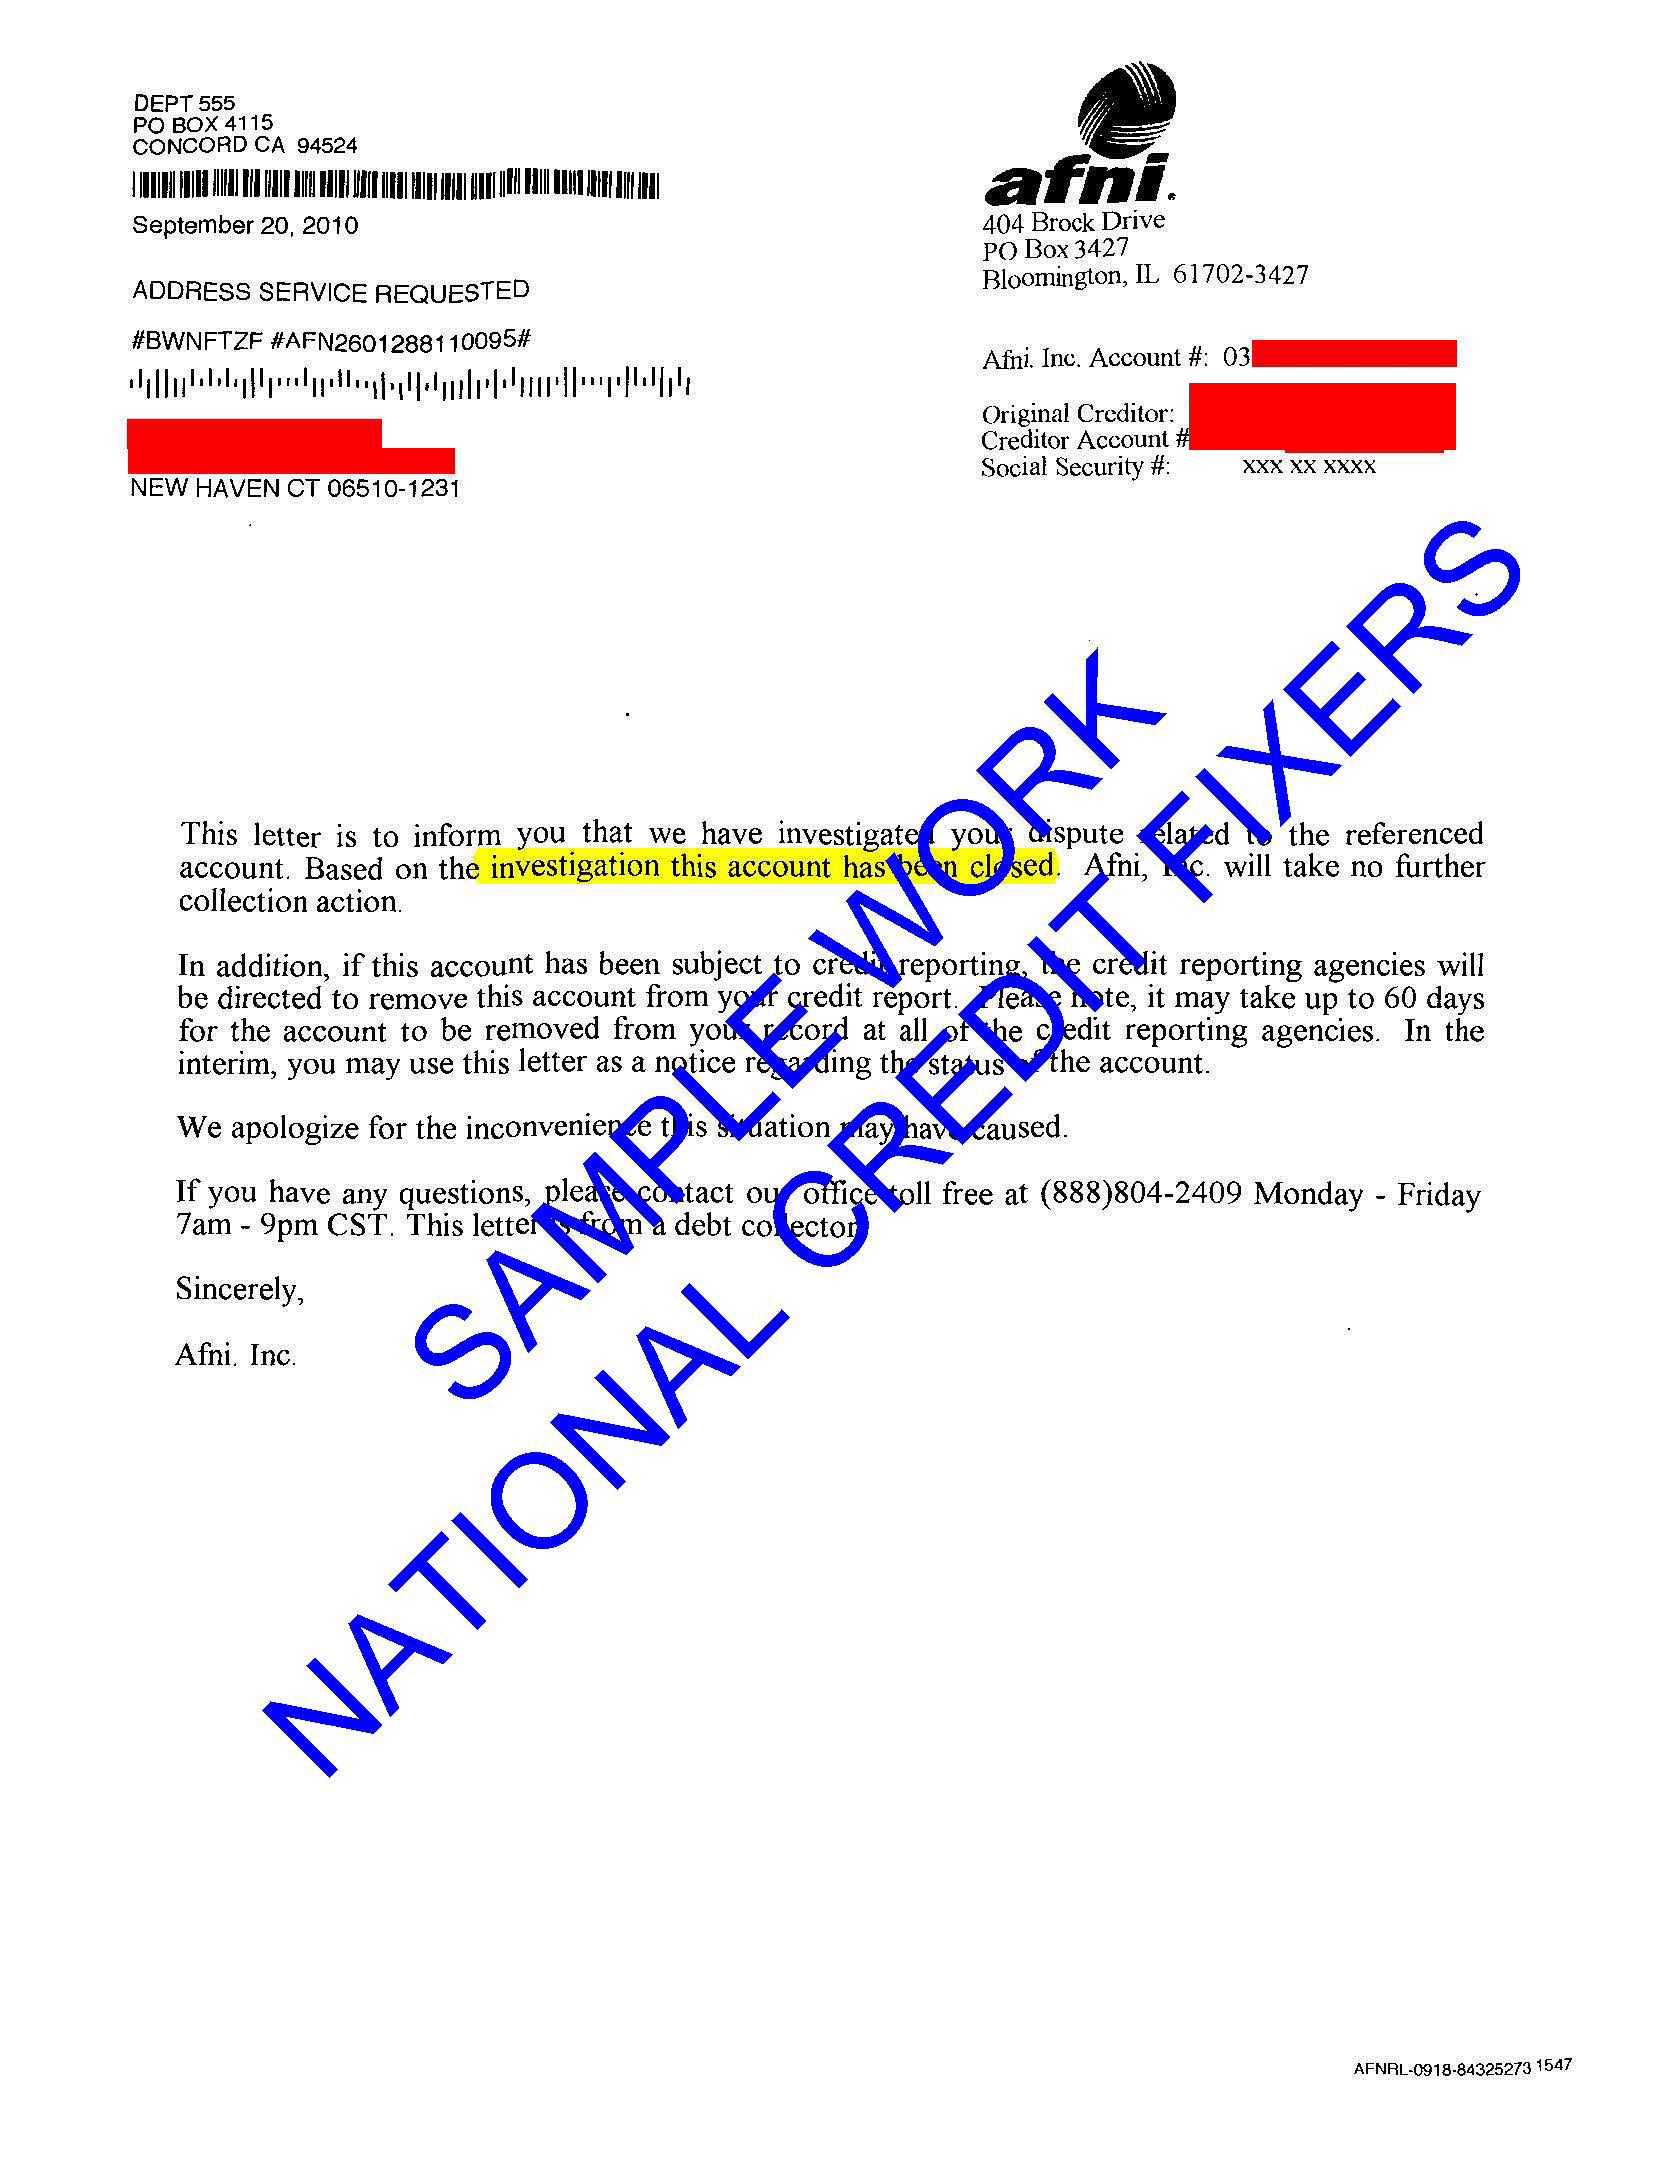 Anderson Financial Network Deletion Letter 3